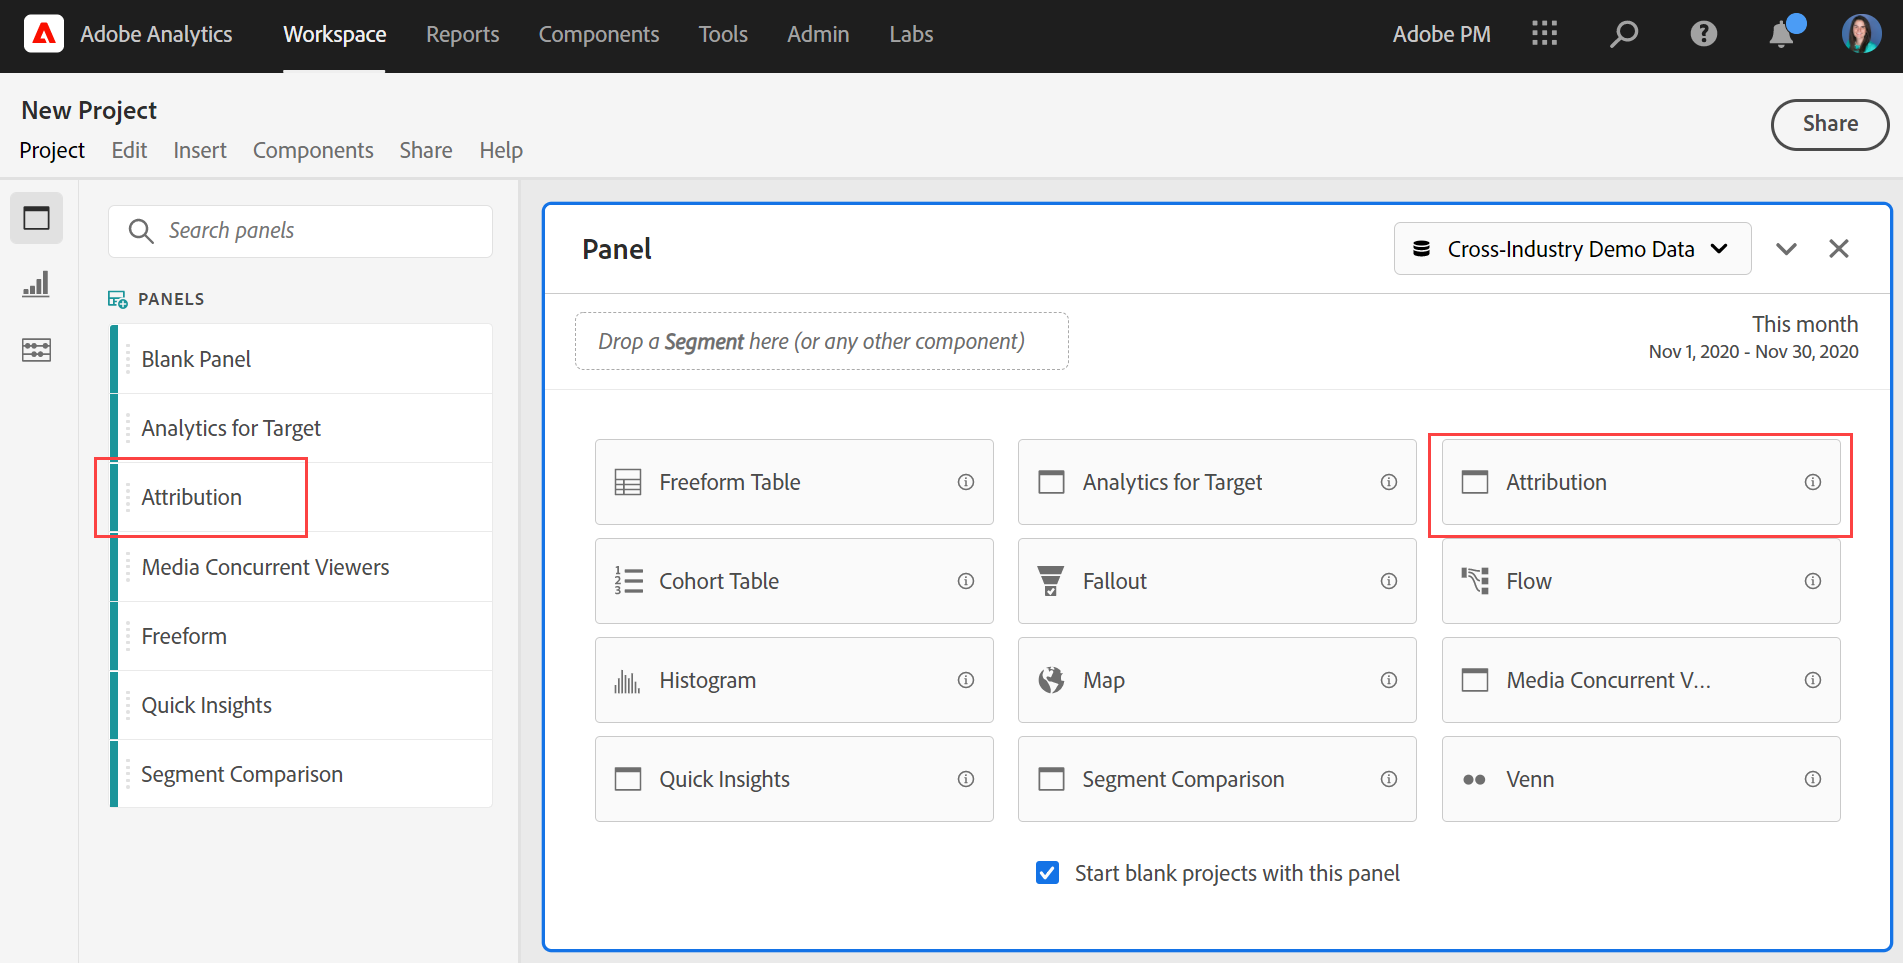 New attribution panel